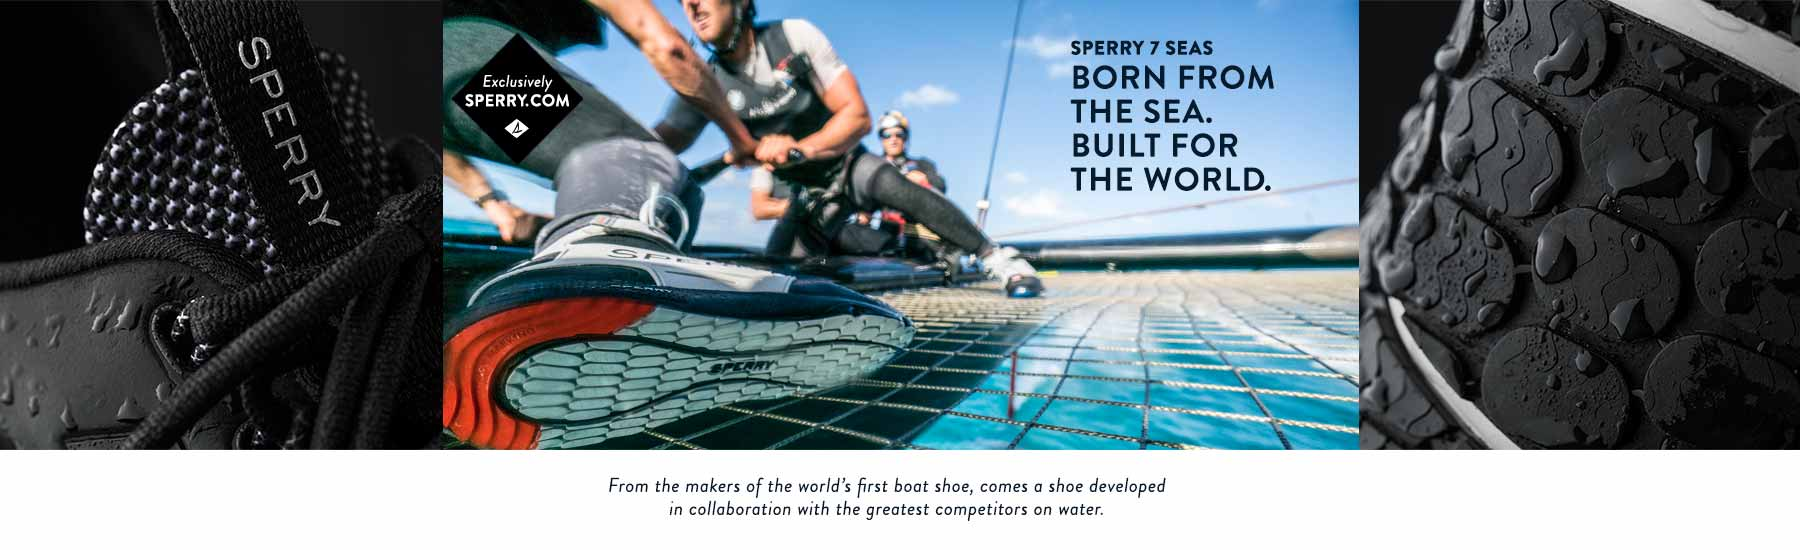 Sperry 7 Seas. Born from the Sea. Built for the World.